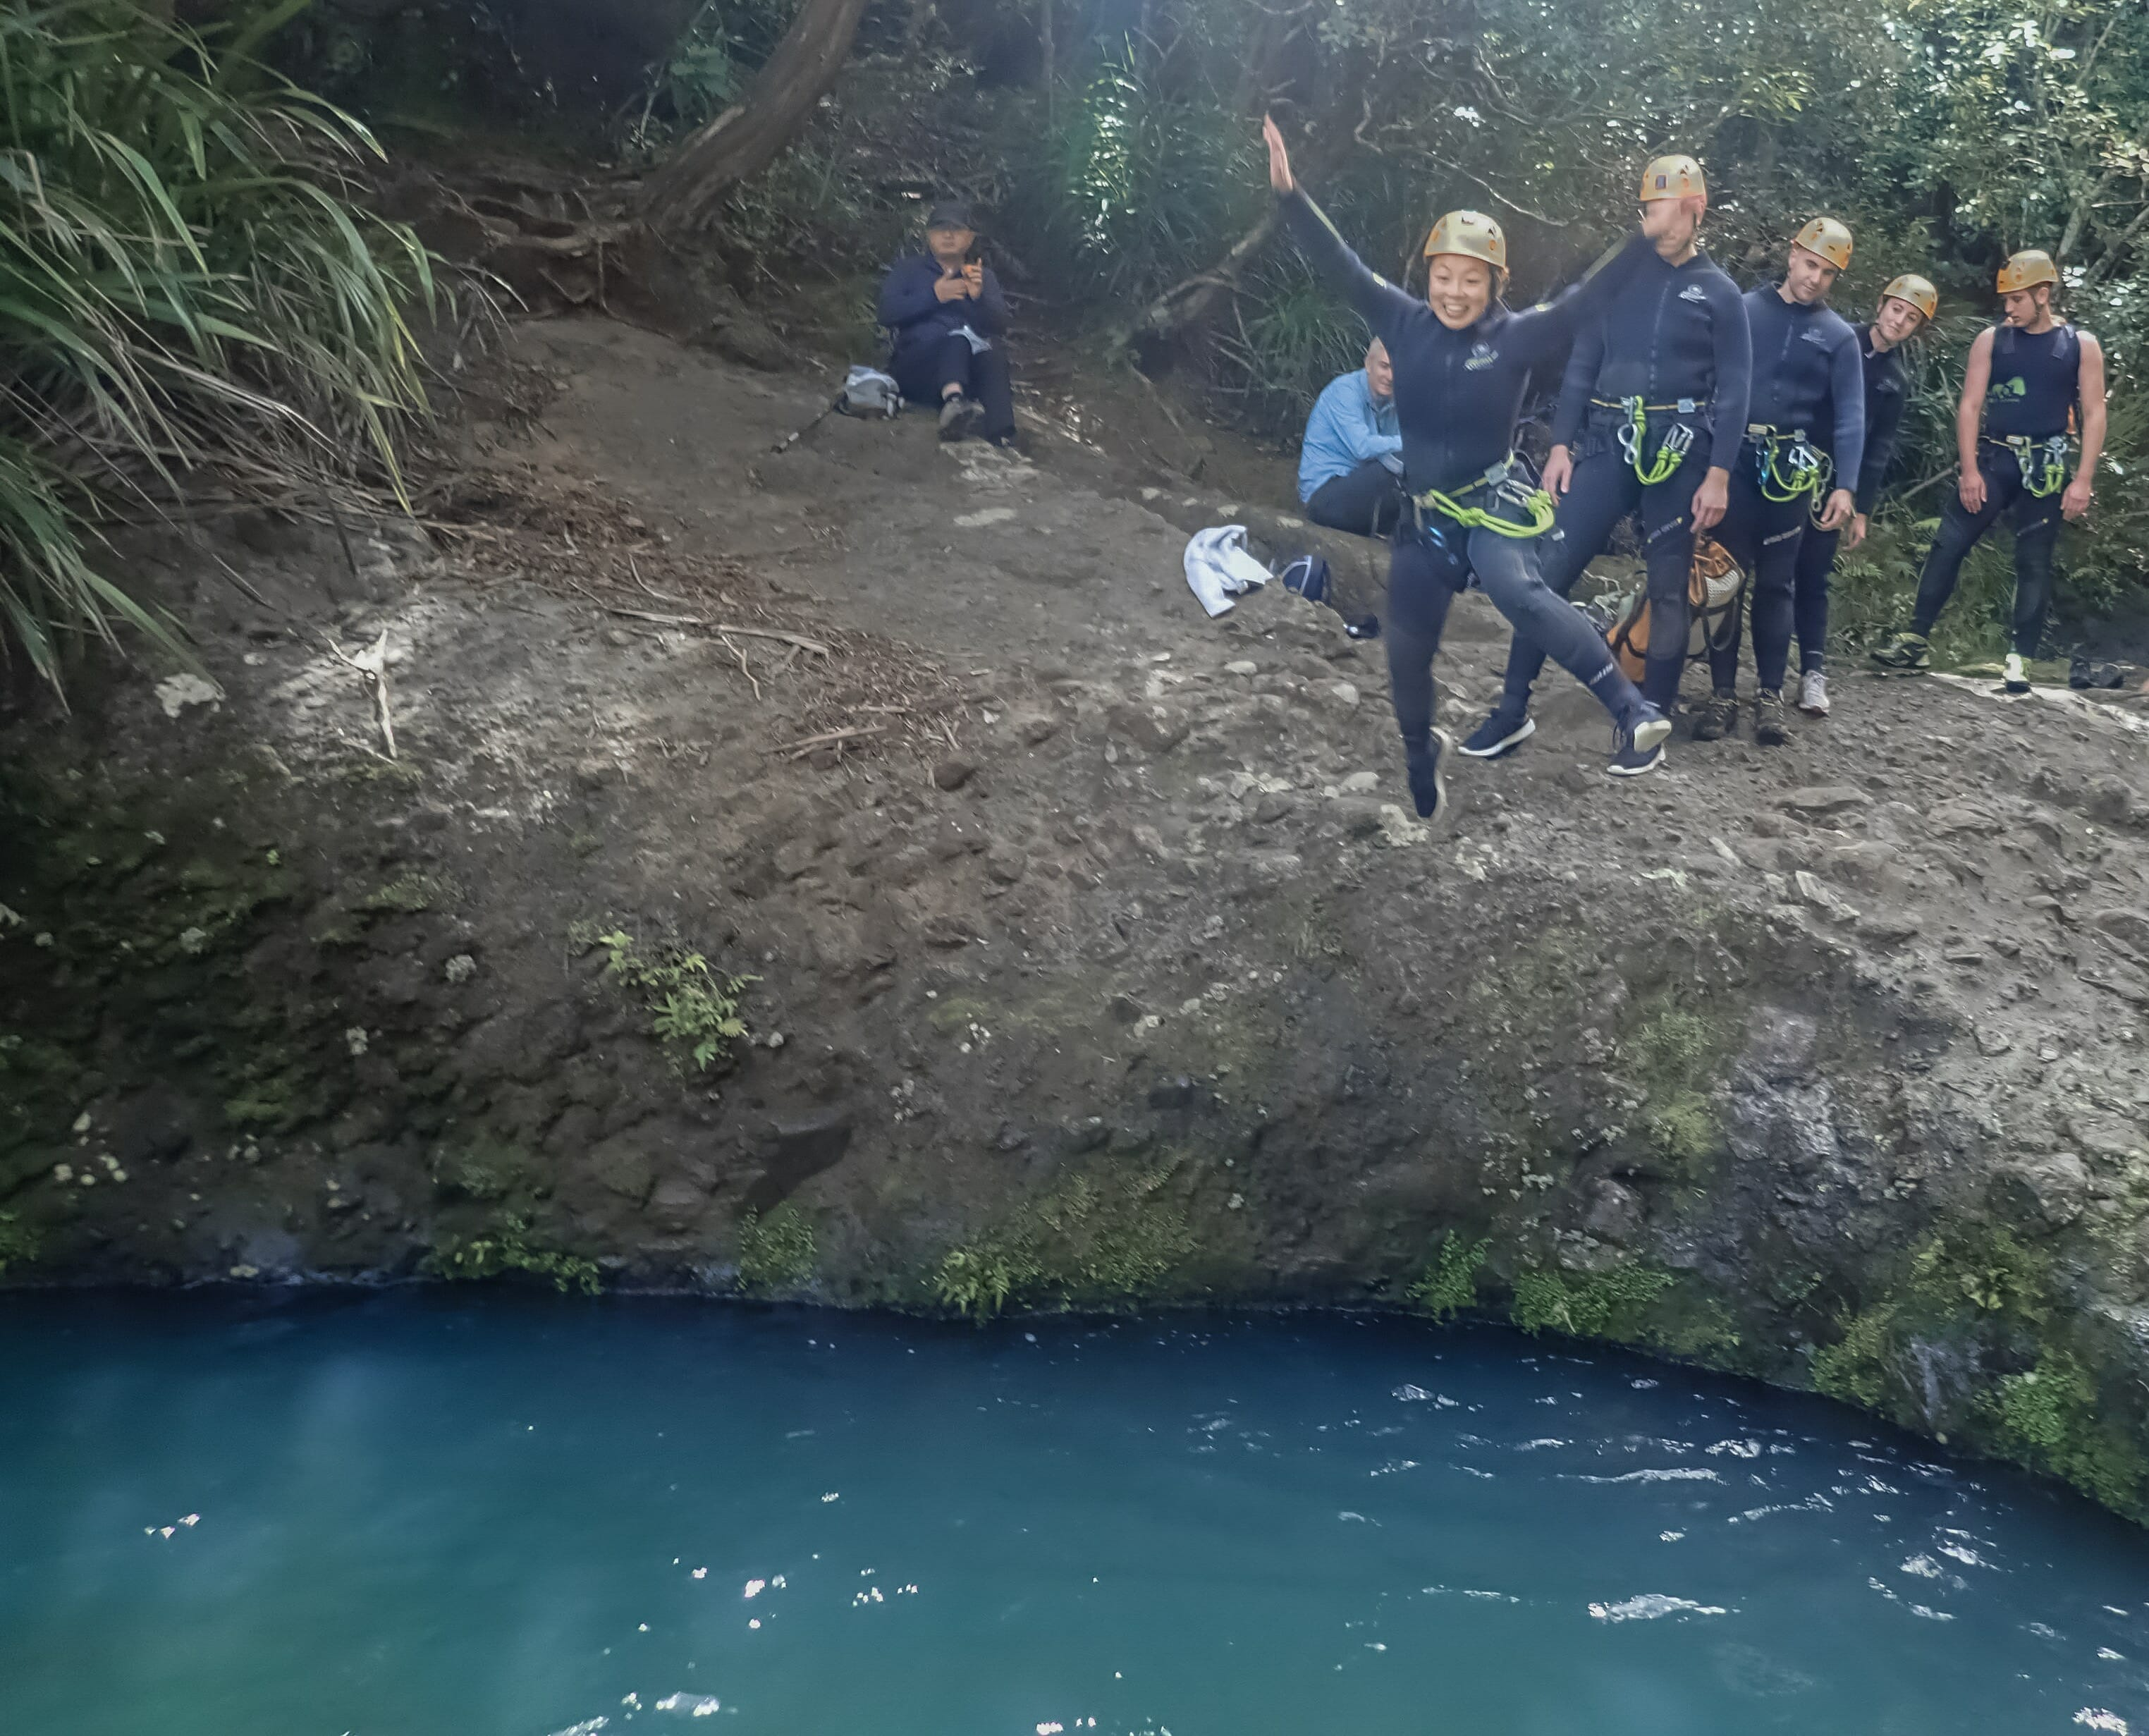 Cliff jumping at Piha Canyon